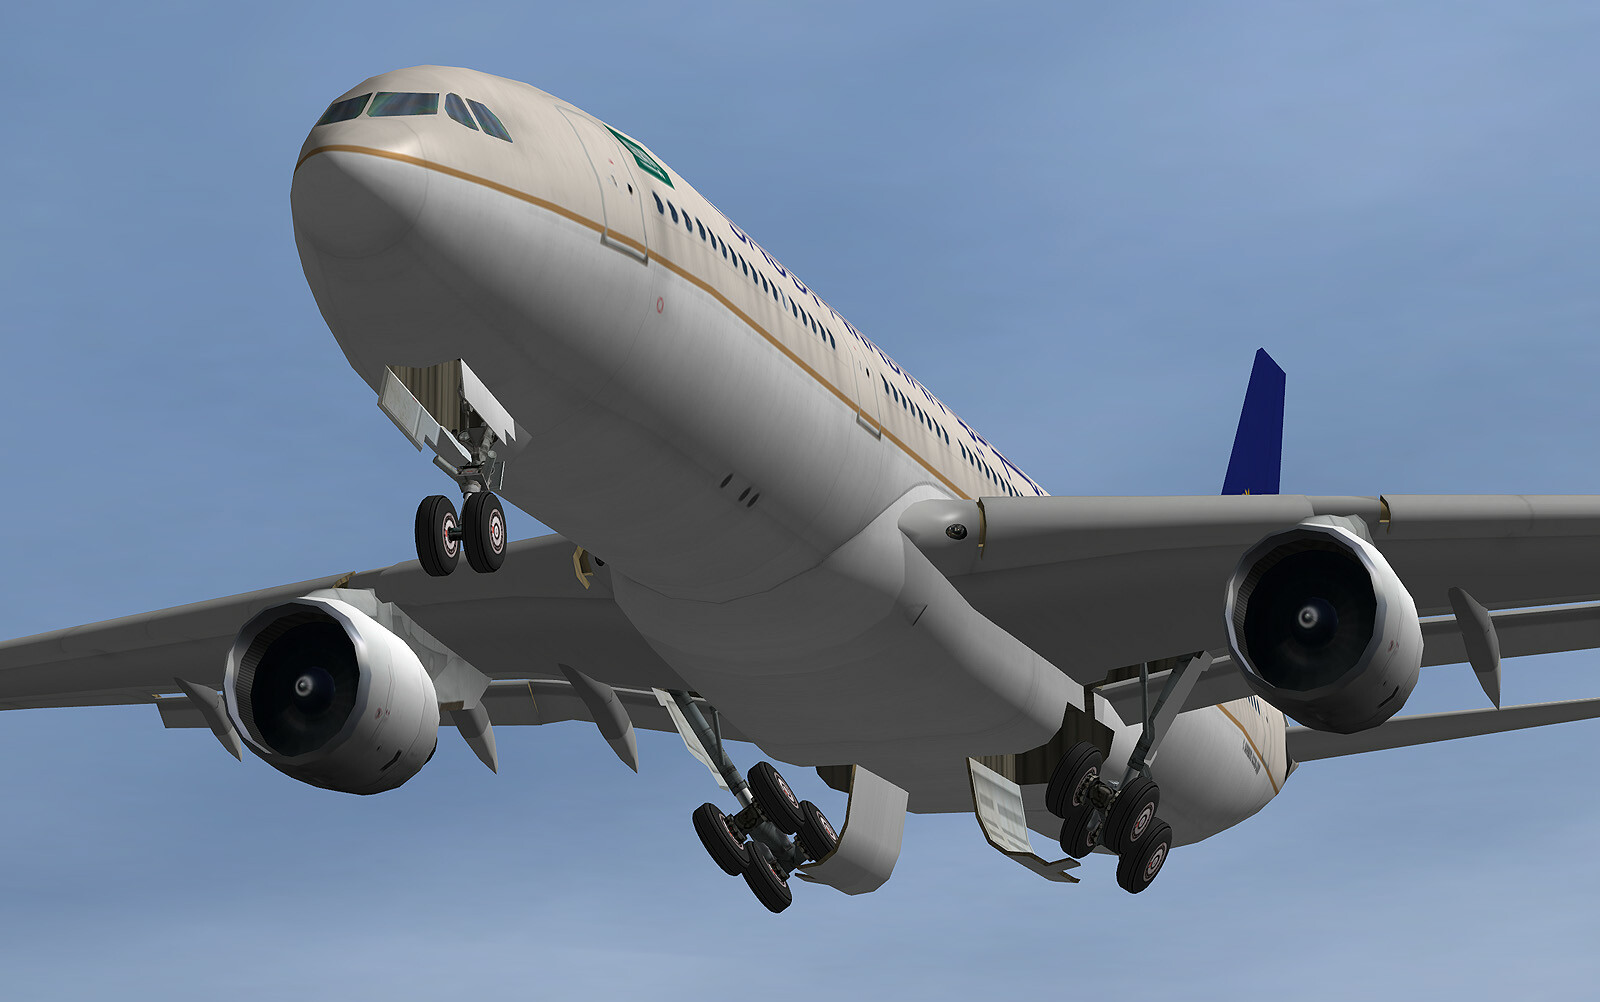 Low poly Saudi Airlines Airbus A330, full articulation in all control surfaces